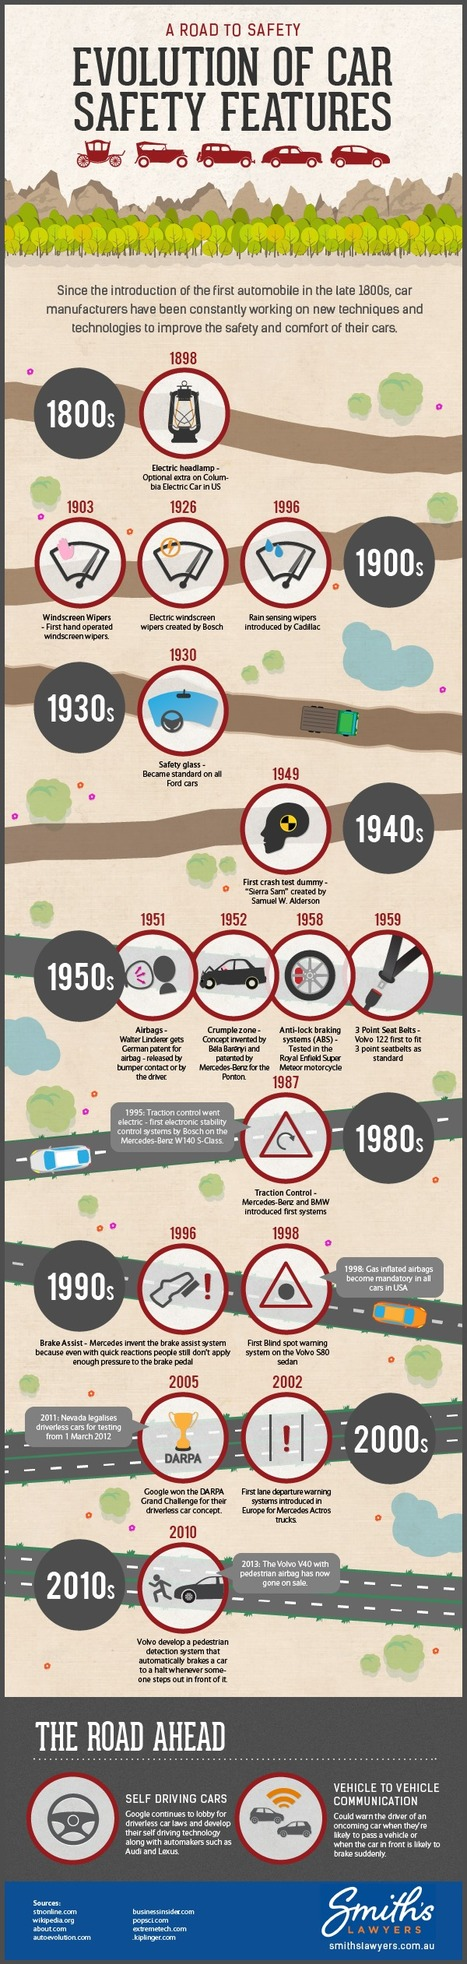 120 Years of Car Safety Evolution | 120 Years of Car Safety Evolution | Scoop.it